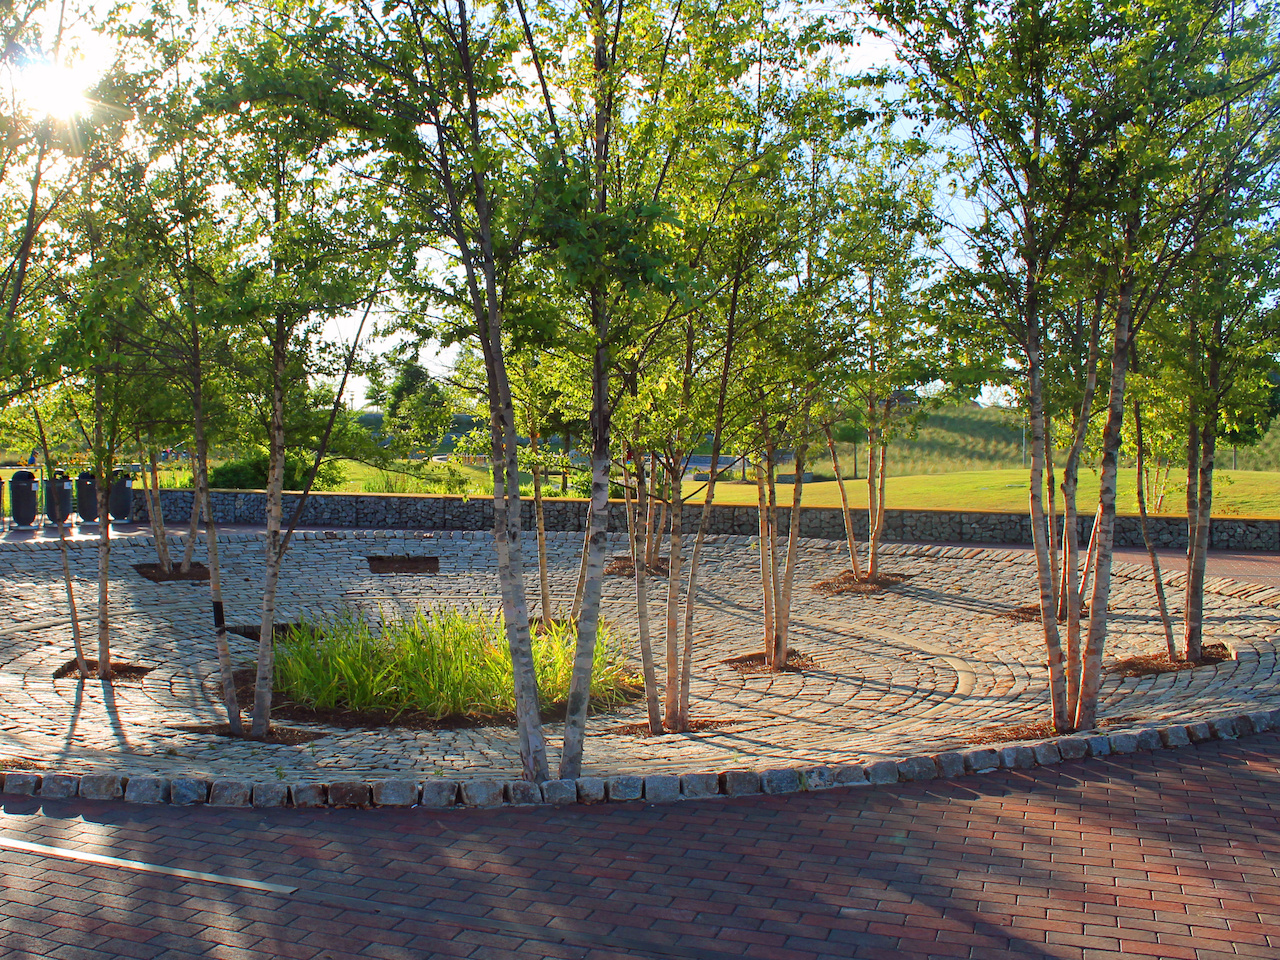 The sunlight filters through vibrant green leaves at Railroad Park